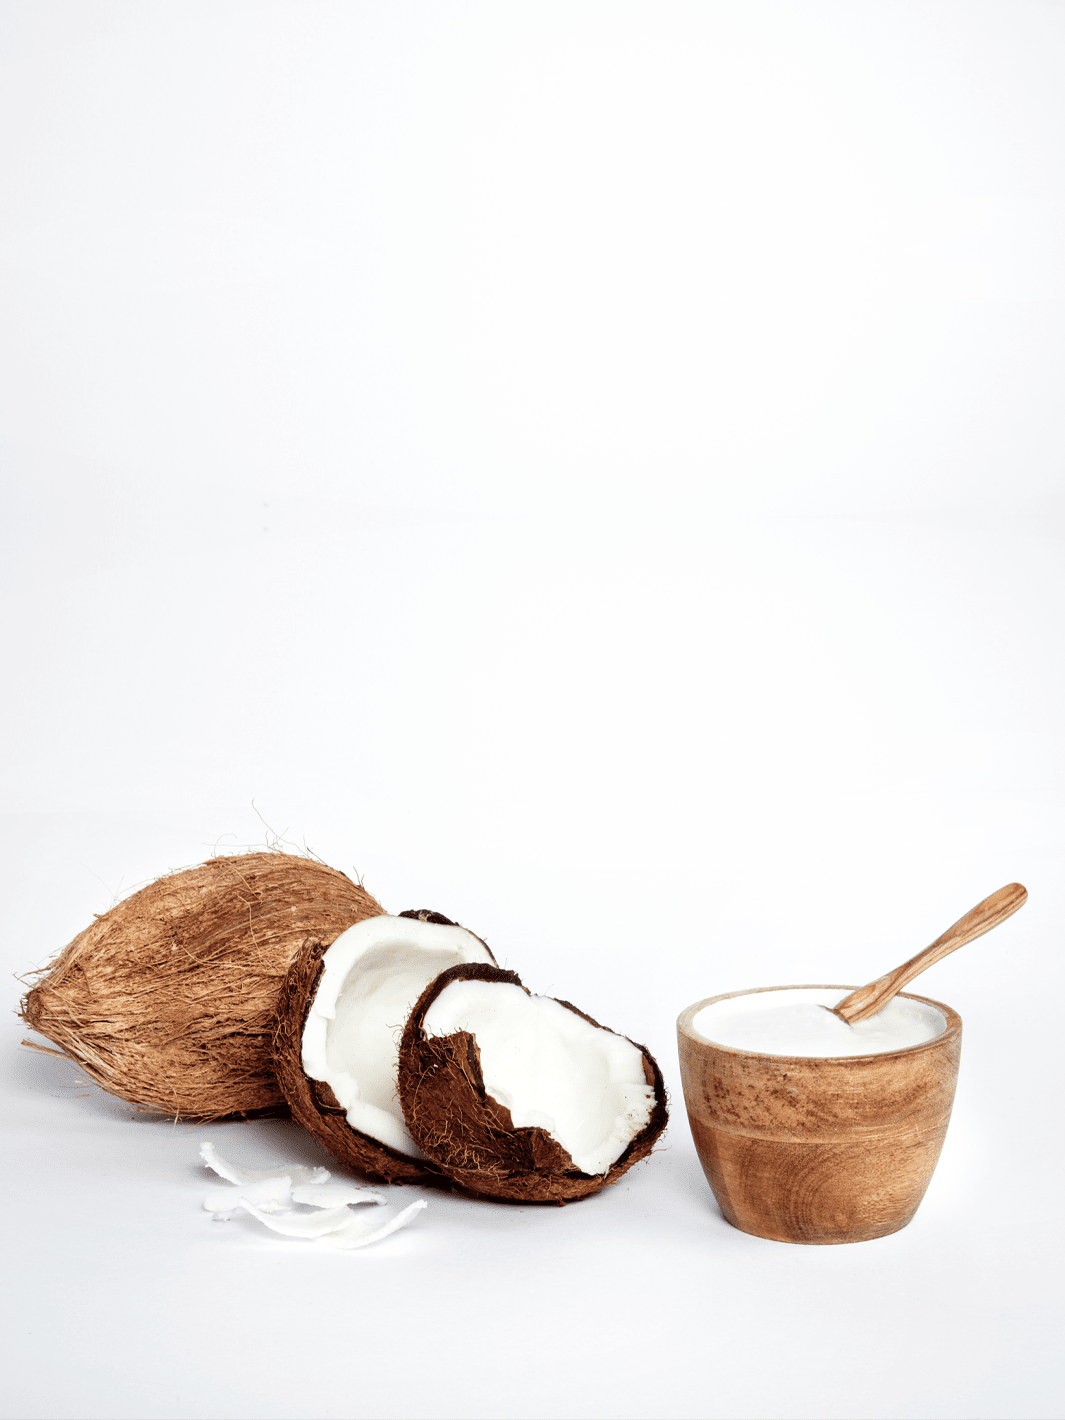 Coconuts and bowl of coconut milk